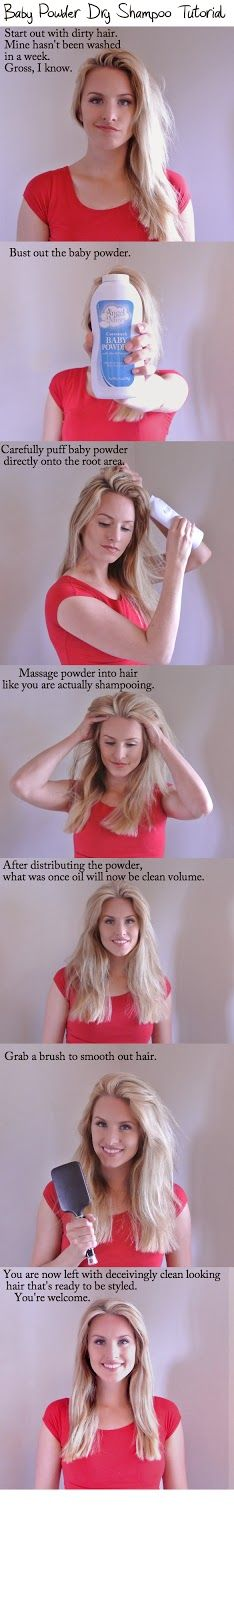 DIY dry shampoo with baby powder.  That's all you need.  Tutorial on how to apply and distribute it. No more paying for expensive dry shampoo.